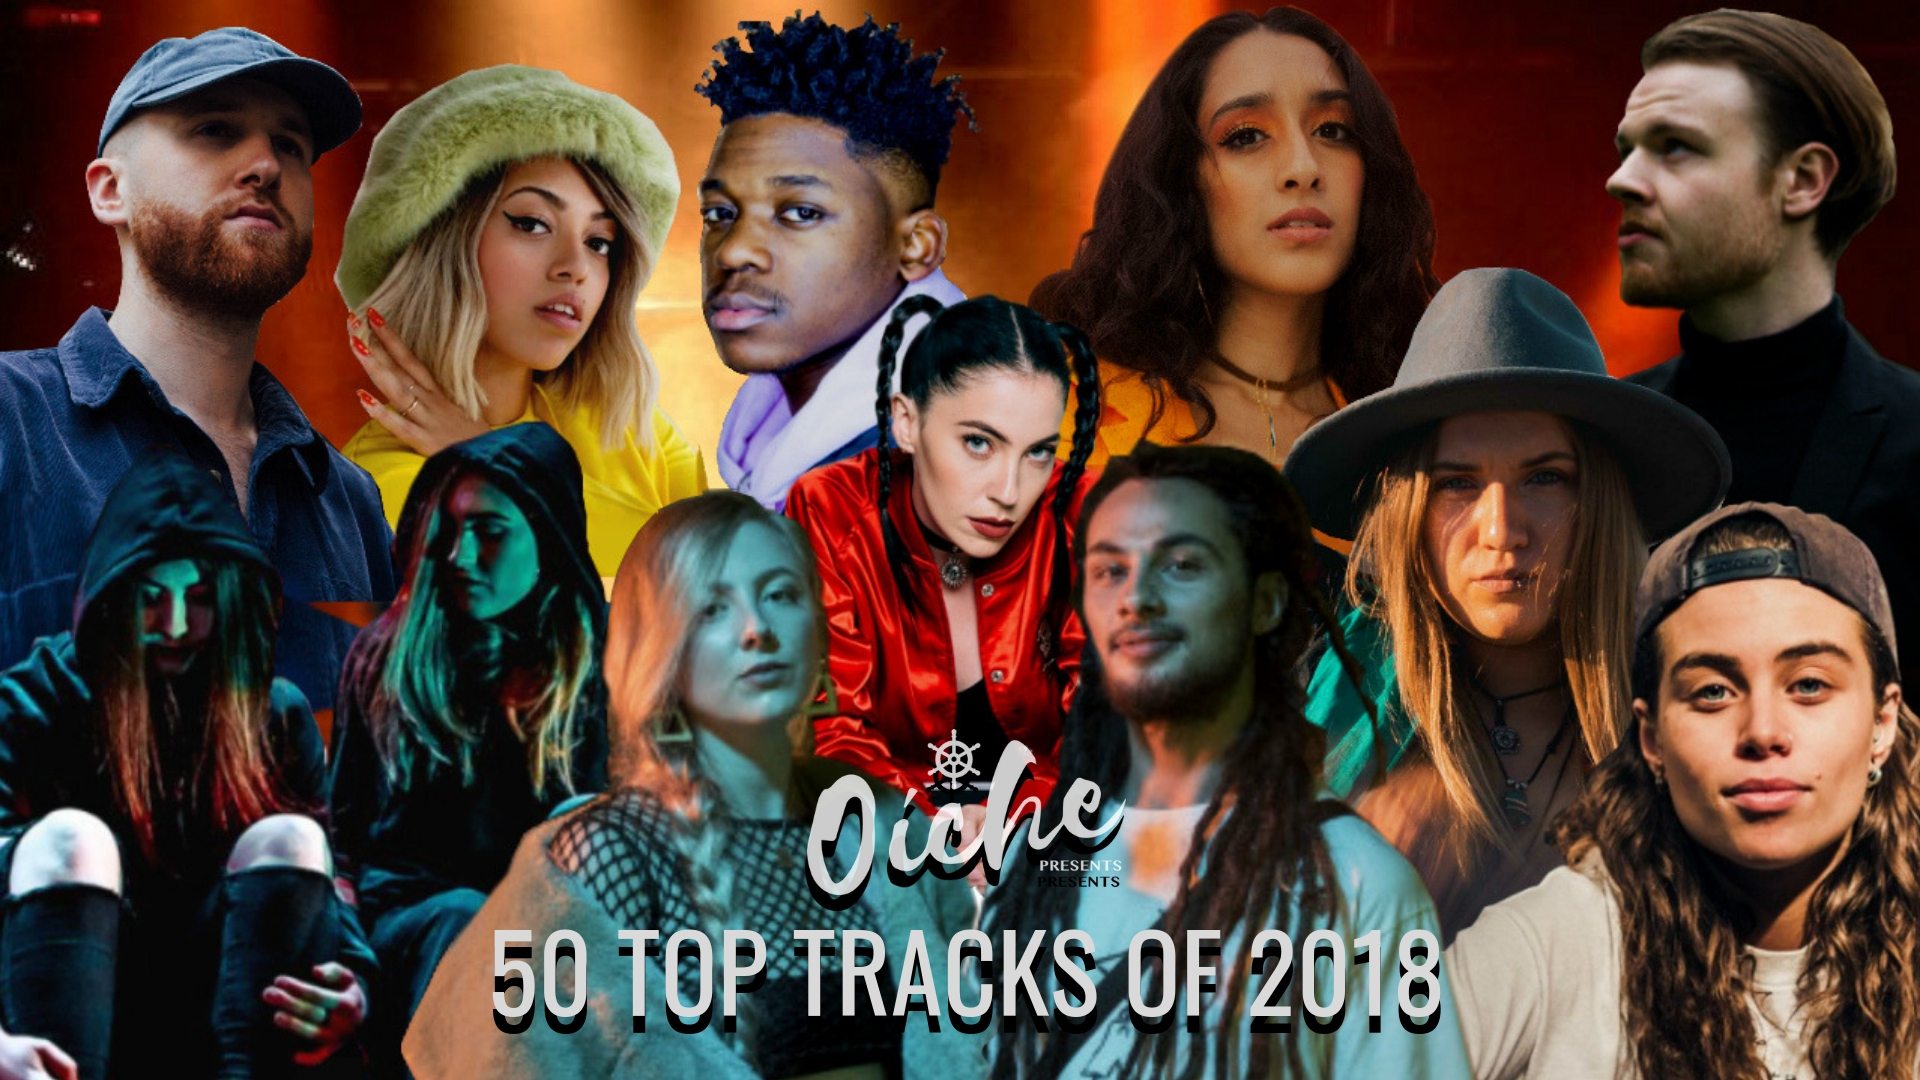 Top 50 Tracks of 2018 Oíche Events